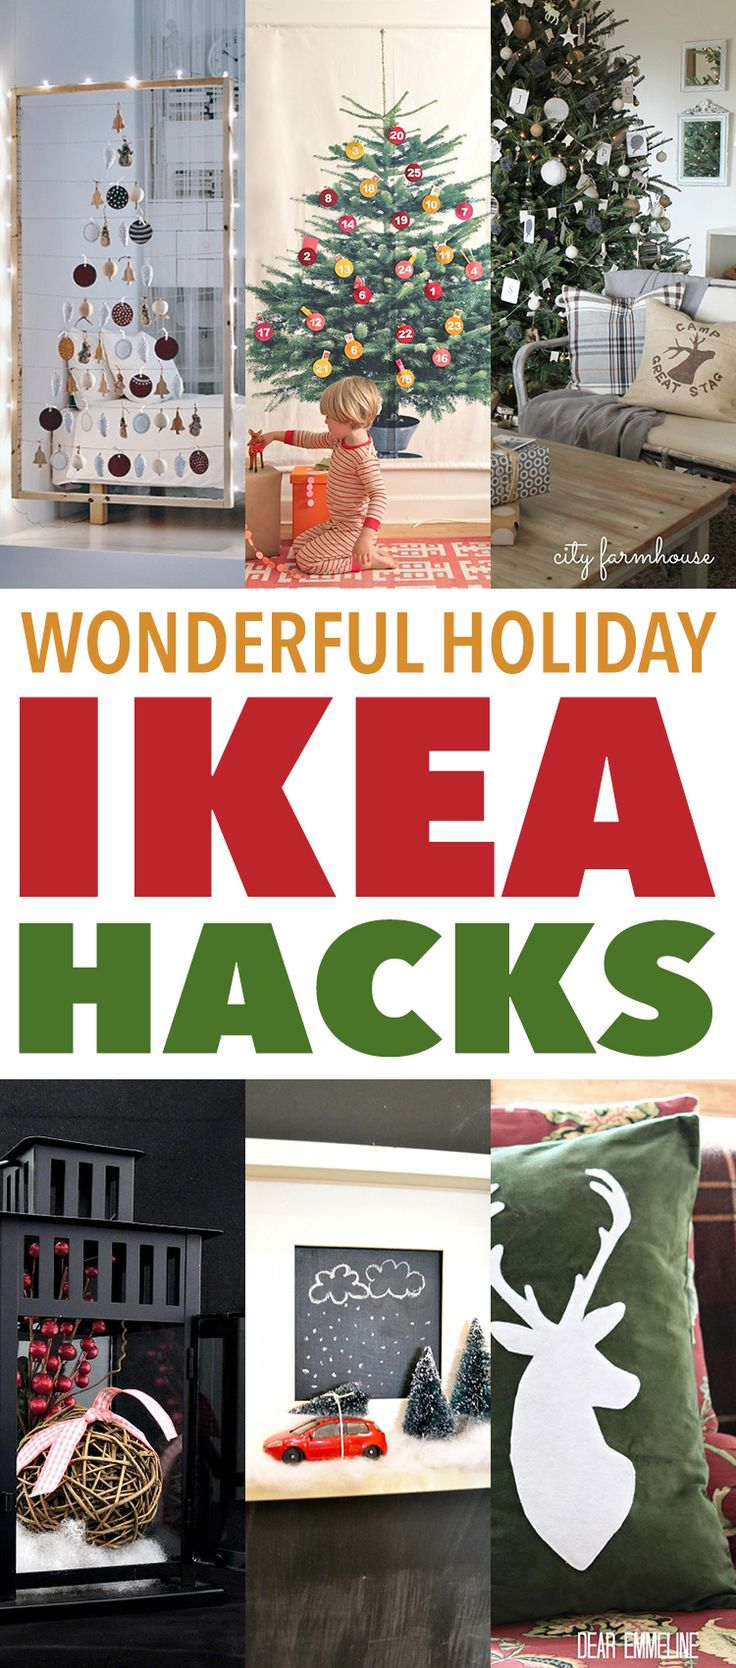 It's starting to feel like the Holidays!  The decorating has started and some of you have all ready begun the Holiday Shopping!  So now is the time to share some Wonderful Holiday IKEA Hacks that are filled with wonderment!  There is a GIANT Advent Calendar…A Wall Ledge Christmas Tree…Lanterns decorated with Cheer and so much …